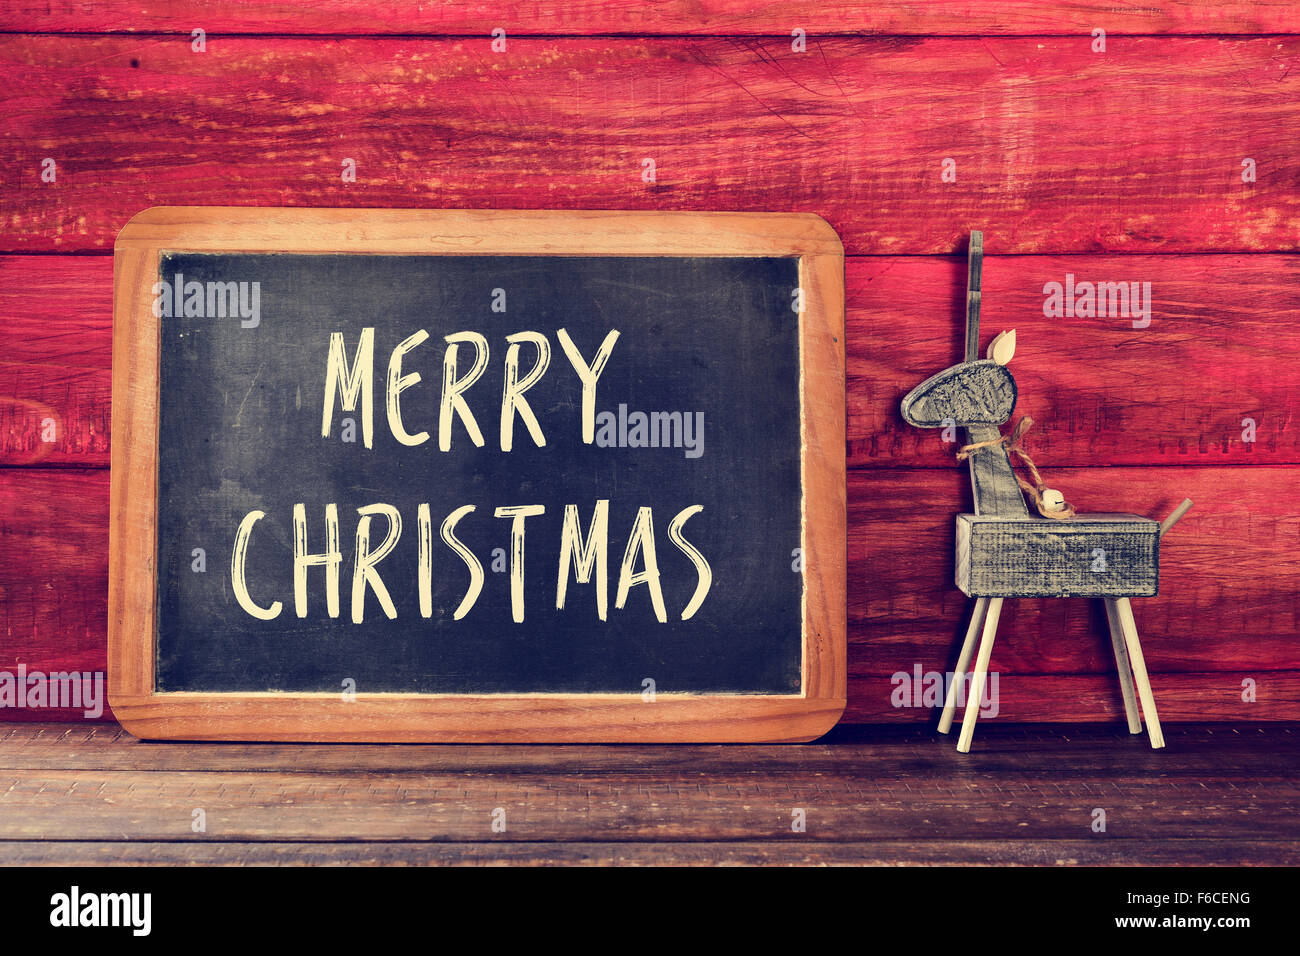 a chalkboard with the text merry christmas written in it and a rustic wooden reindeer placed on a wooden surface - Stock Image